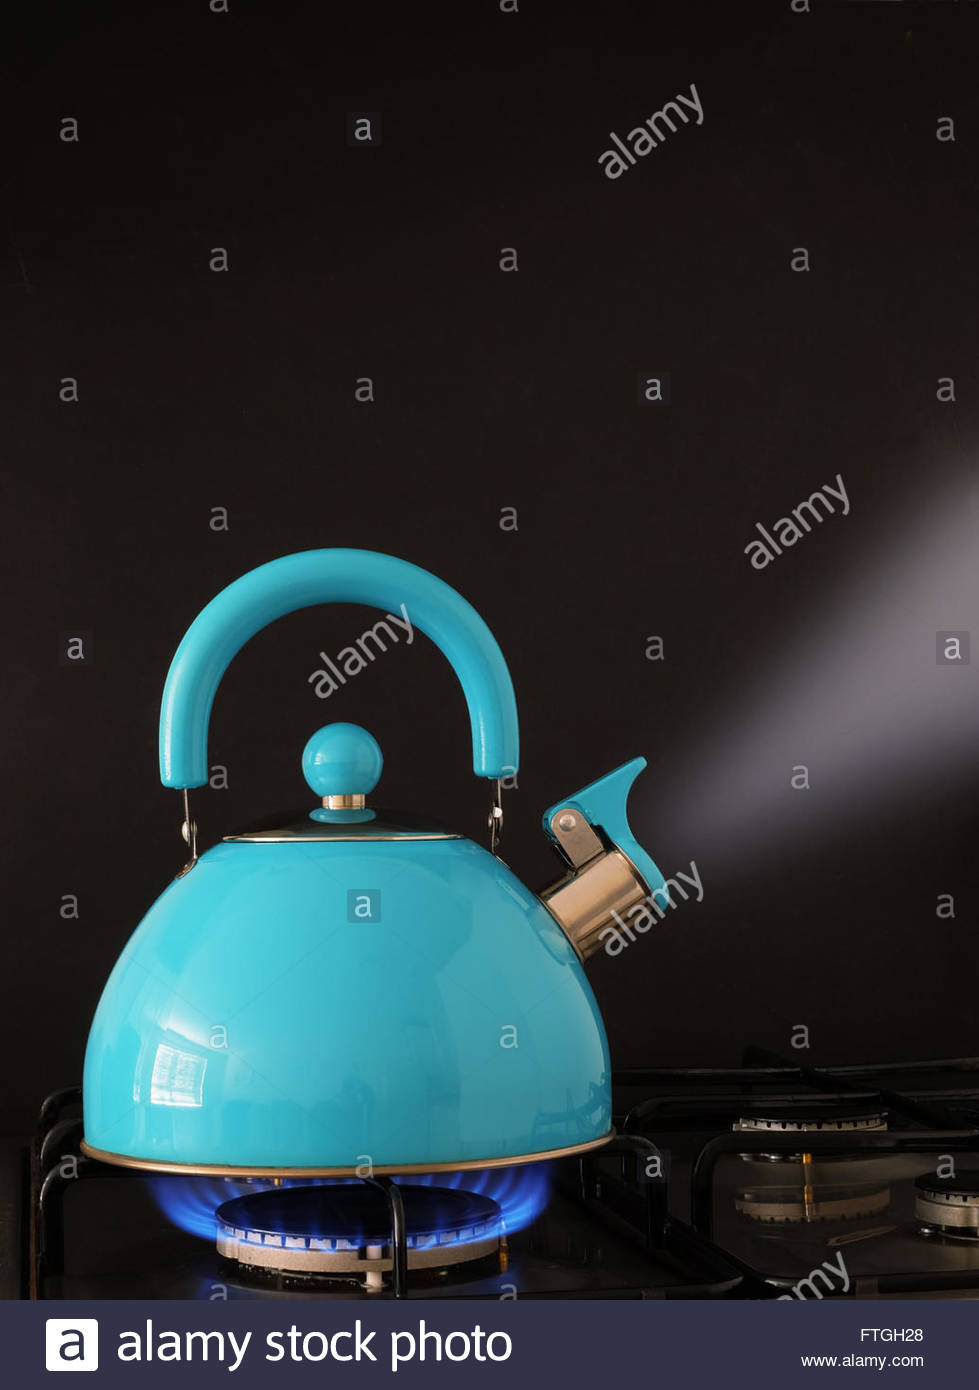 Kettle boiling water on a gas flame kitchen hob - Stock Image